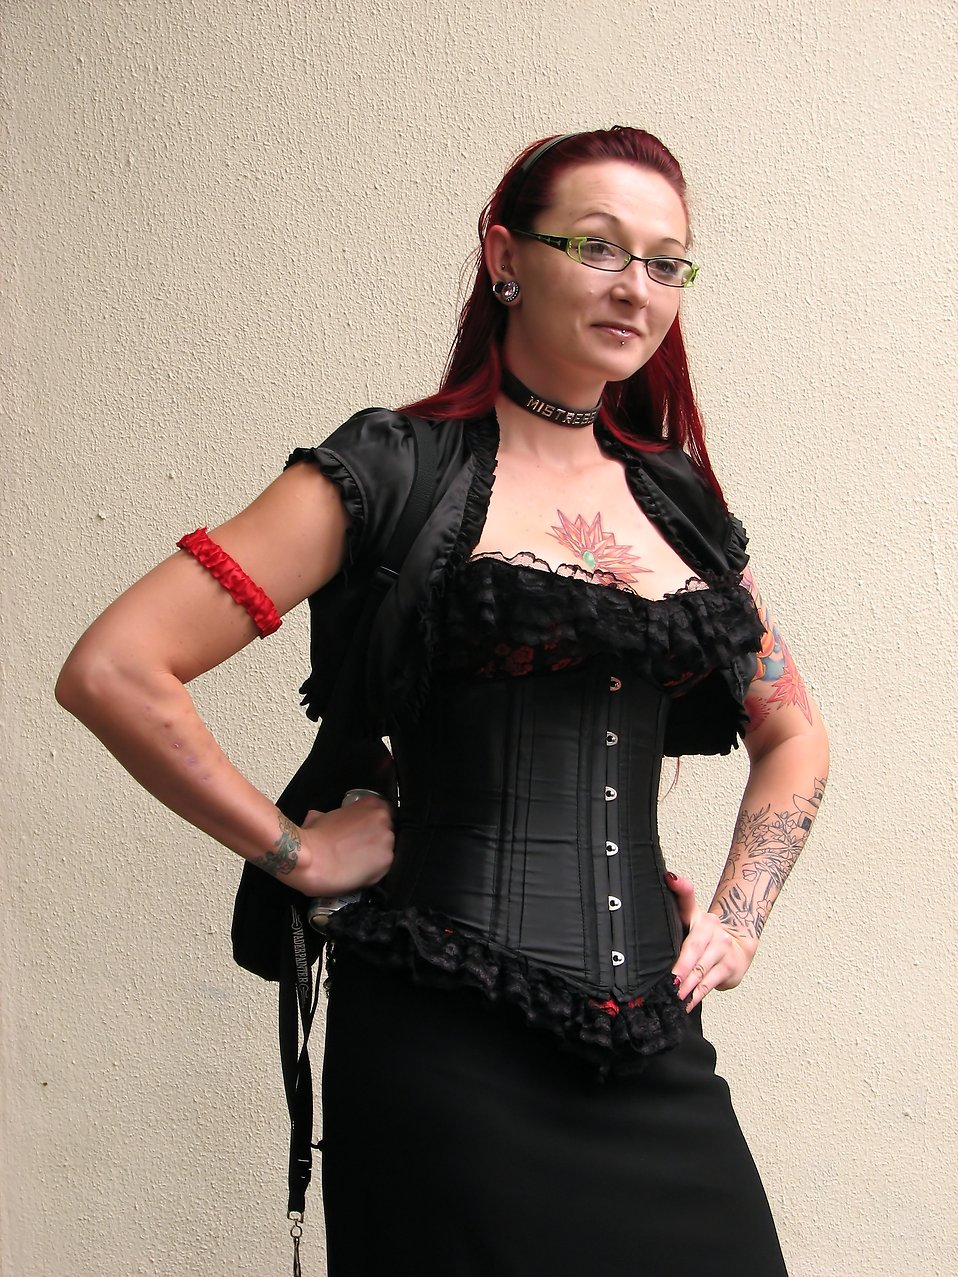 A woman in a costume at Dragoncon 2009 in Atlanta, Georgia : Free Stock Photo